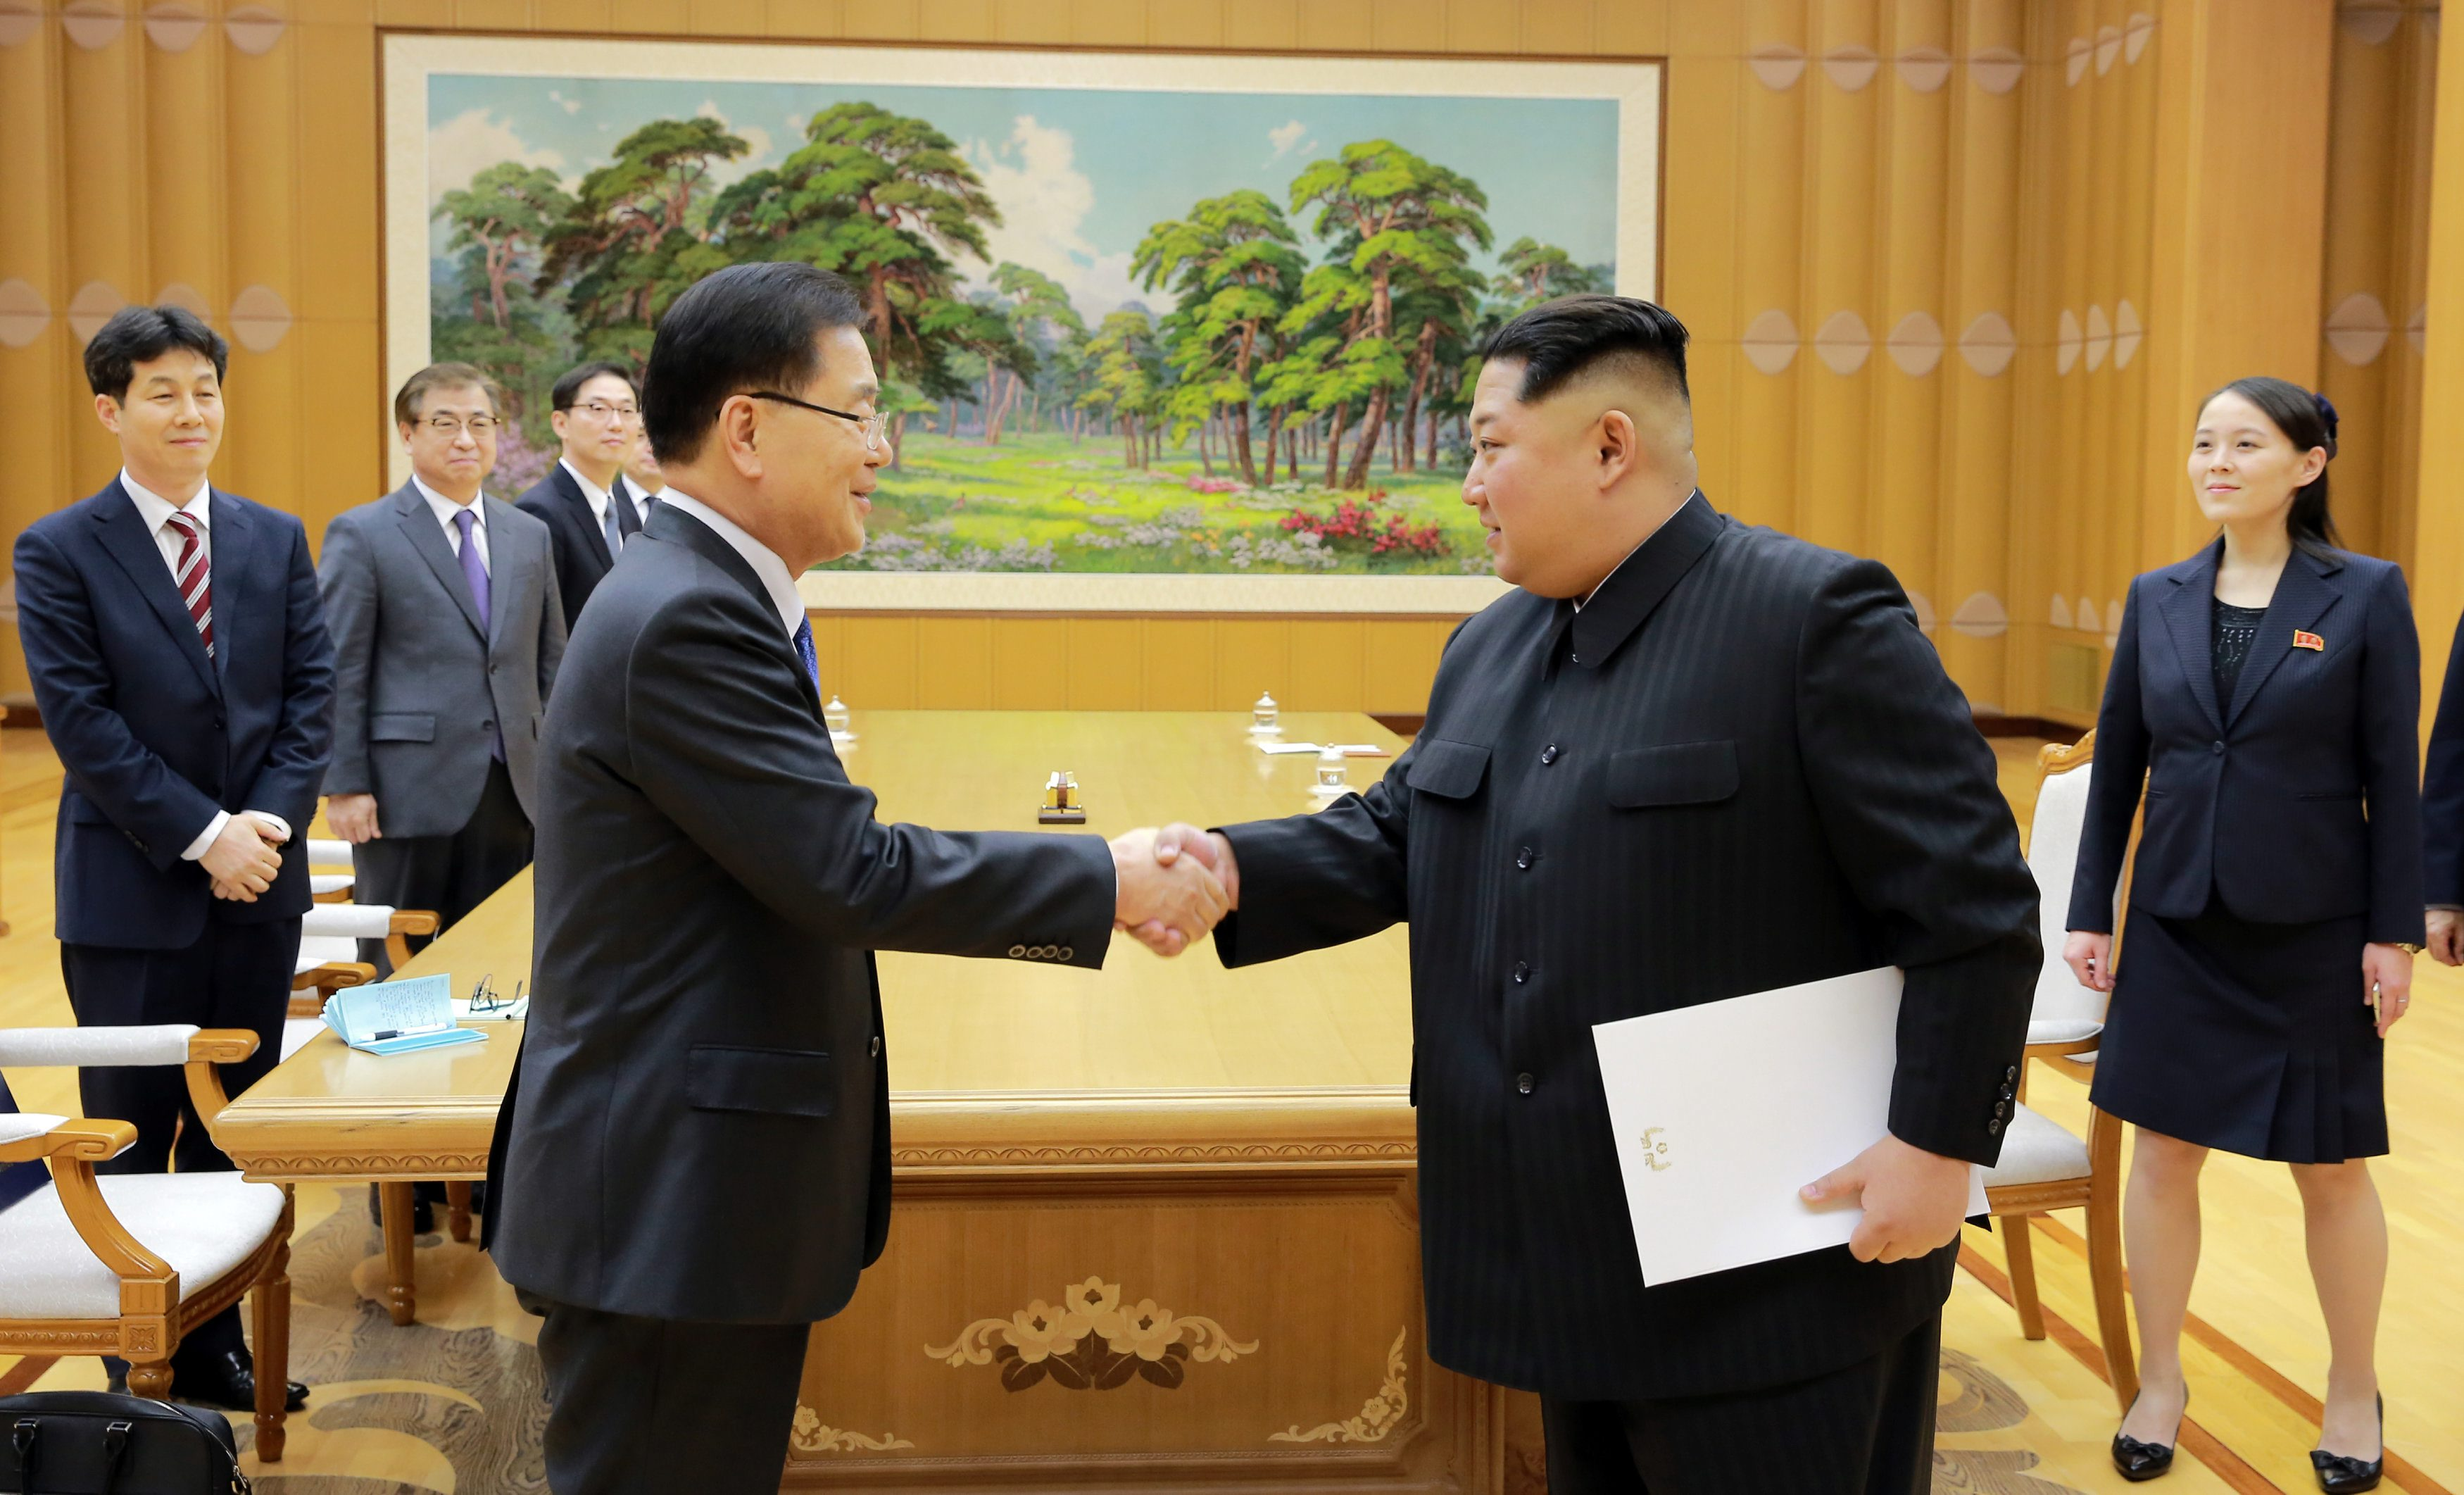 North Korean leader Kim Jong Un greets Chung Eui-yong, head of the presidential National Security Office, in Pyongyang, North Korea, March 6, 2018.     The Presidential Blue House/Yonhap via REUTERS   ATTENTION EDITORS - THIS IMAGE HAS BEEN SUPPLIED BY A THIRD PARTY. SOUTH KOREA OUT. NO RESALES. NO ARCHIVE.